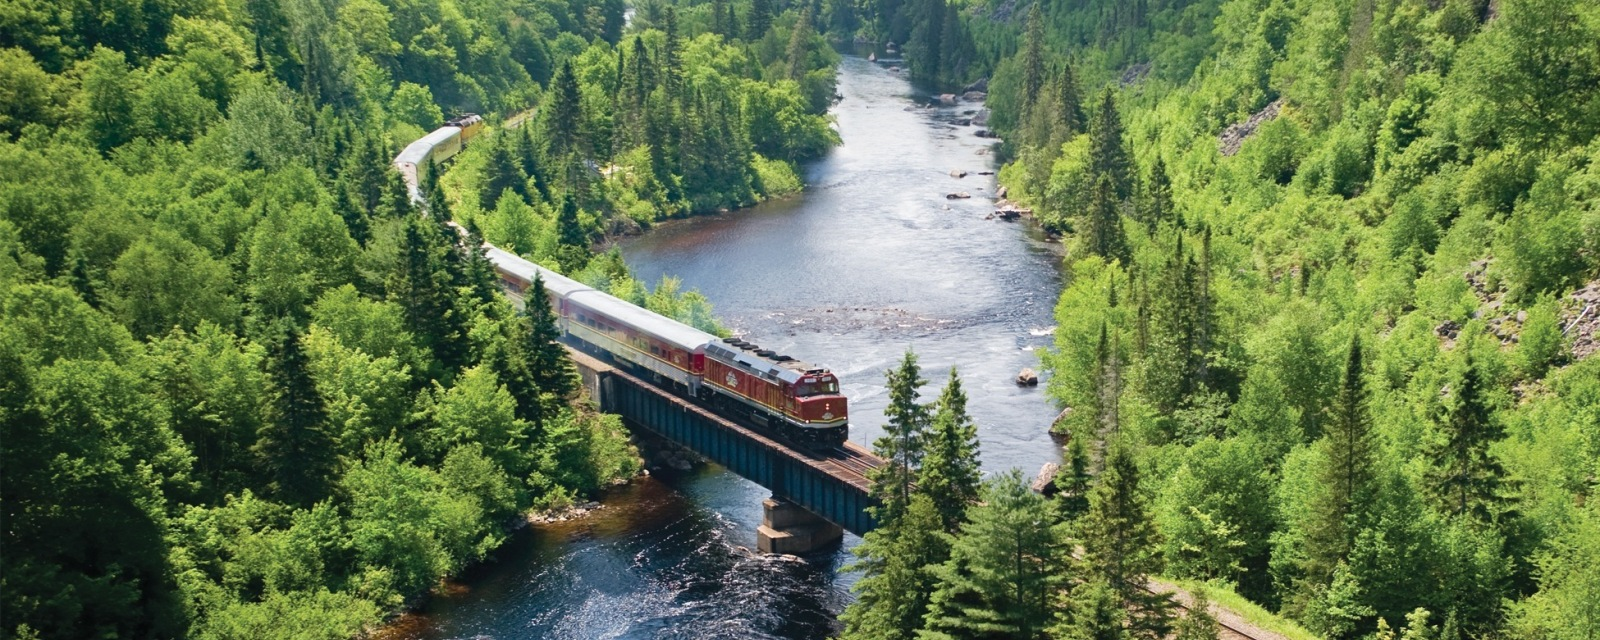 Agawa Canyon Tour Train (3 Day)